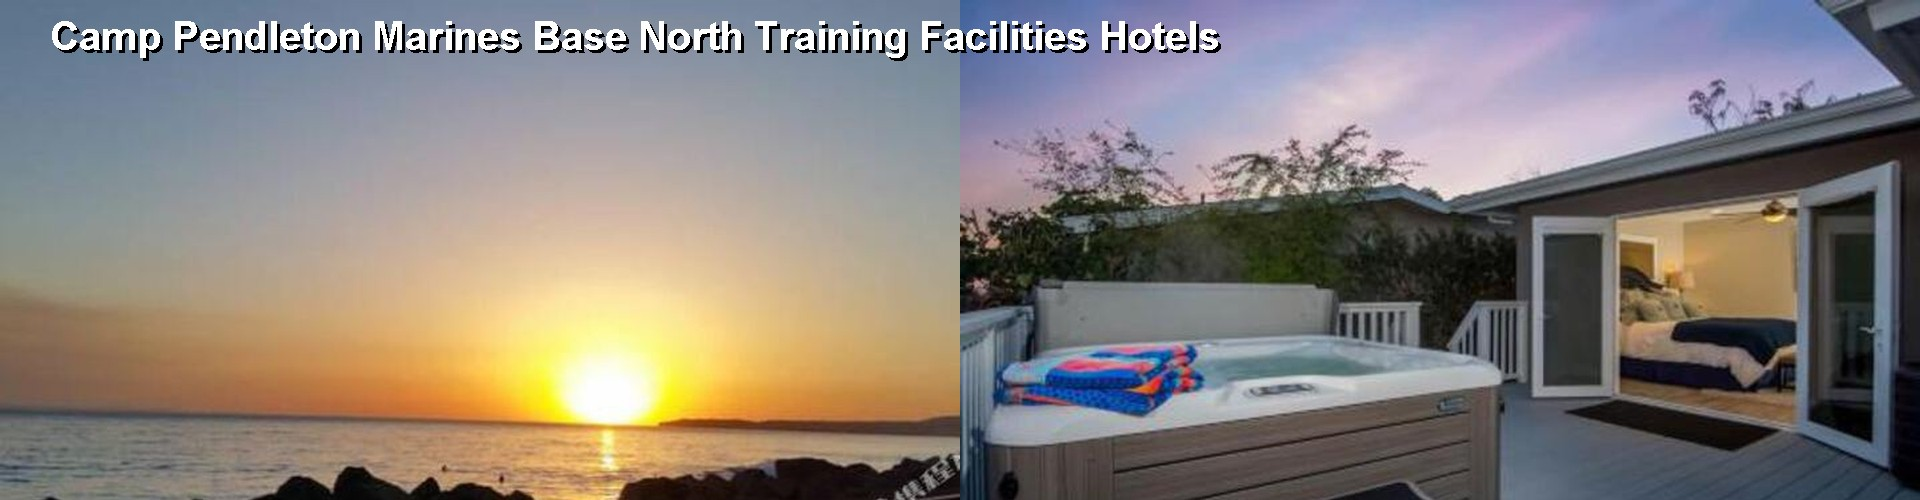 5 Best Hotels near Camp Pendleton Marines Base North Training Facilities